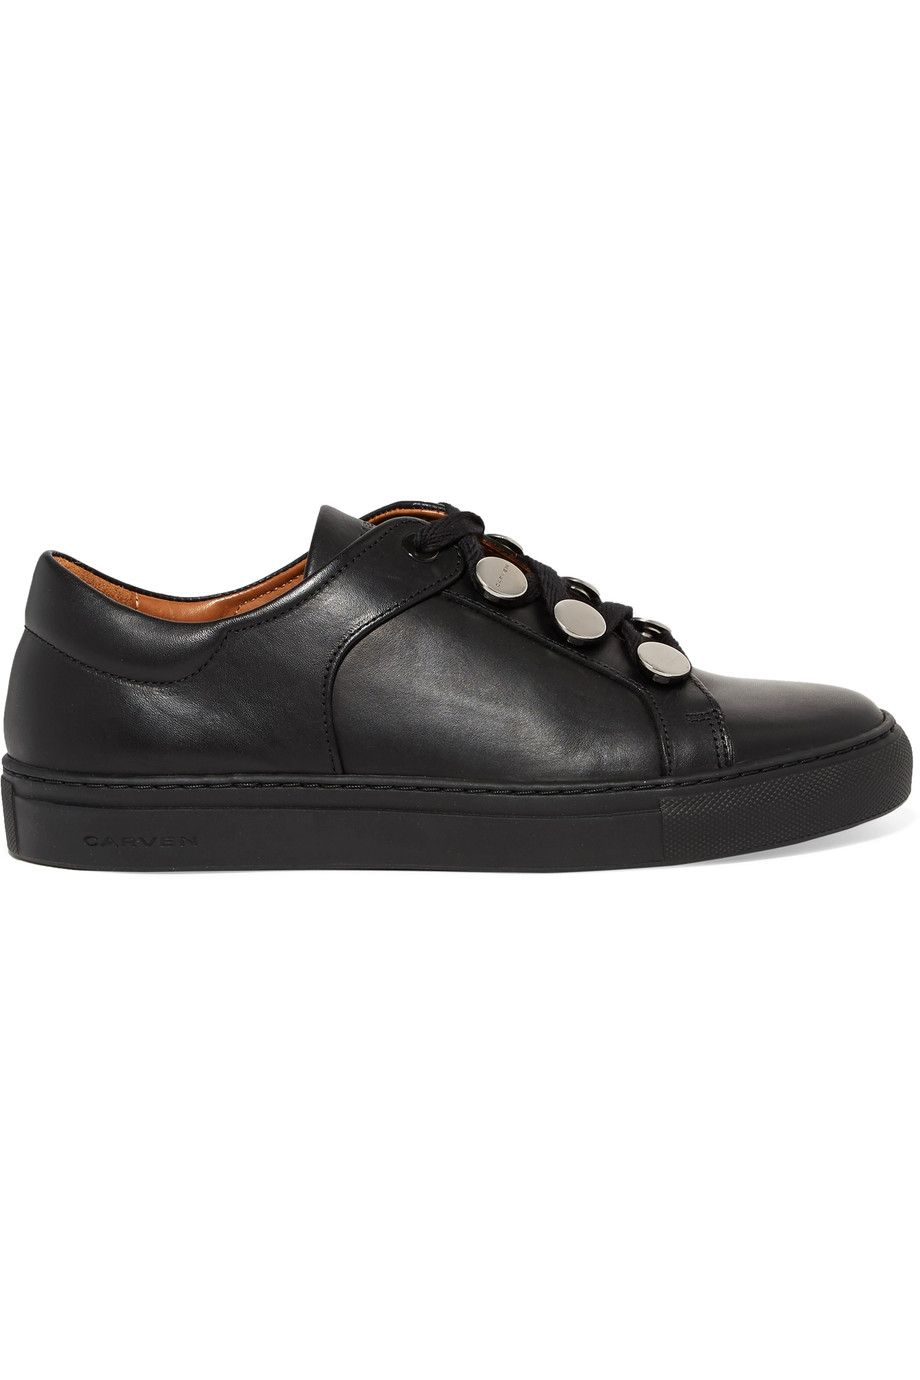 CARVEN . #carven #shoes #sneakers